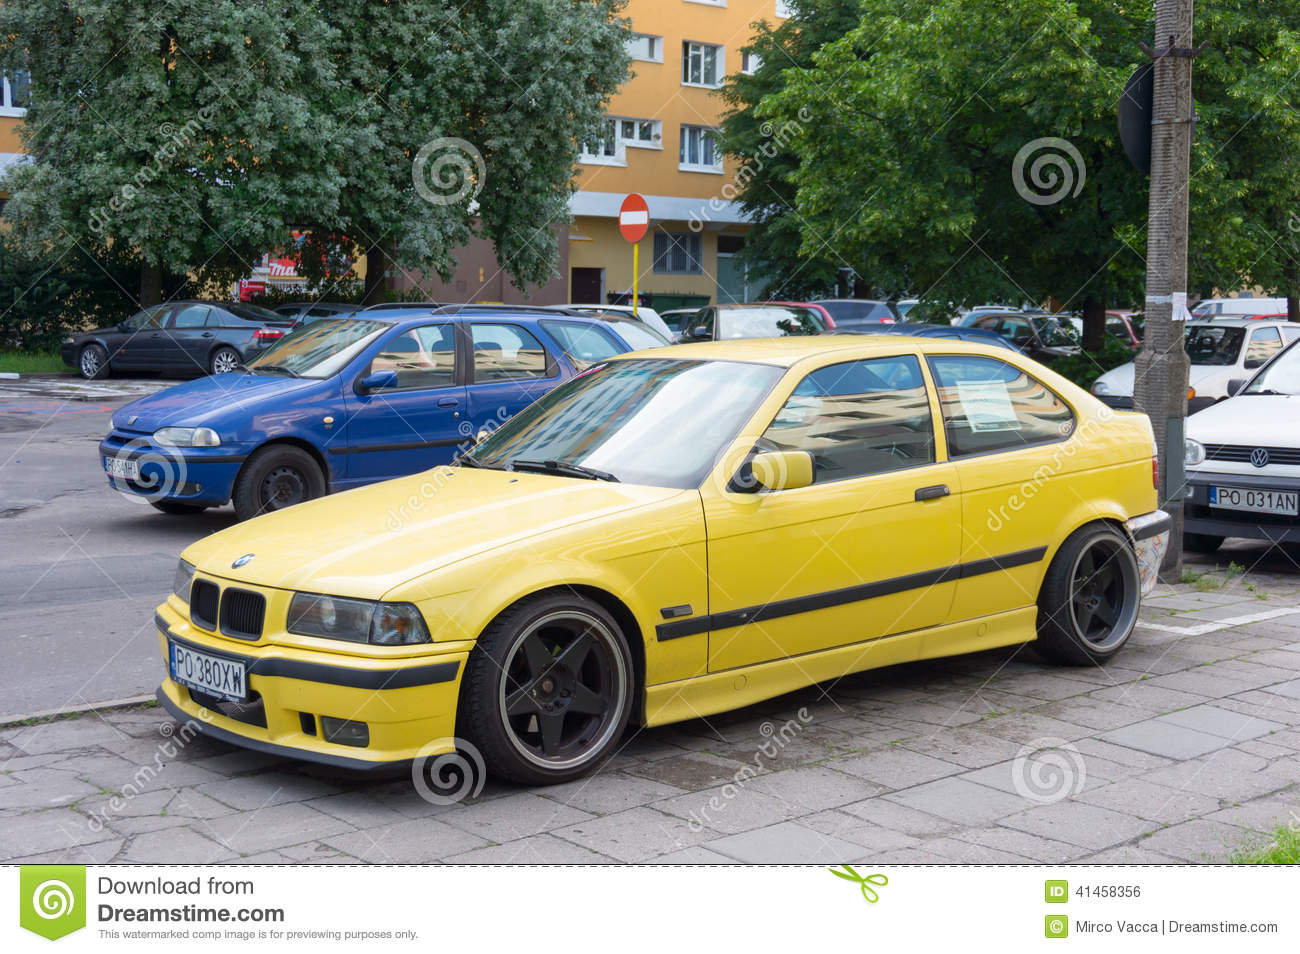 Bmw For Sale Editorial Photo Image Of Parked Poznan 41458356